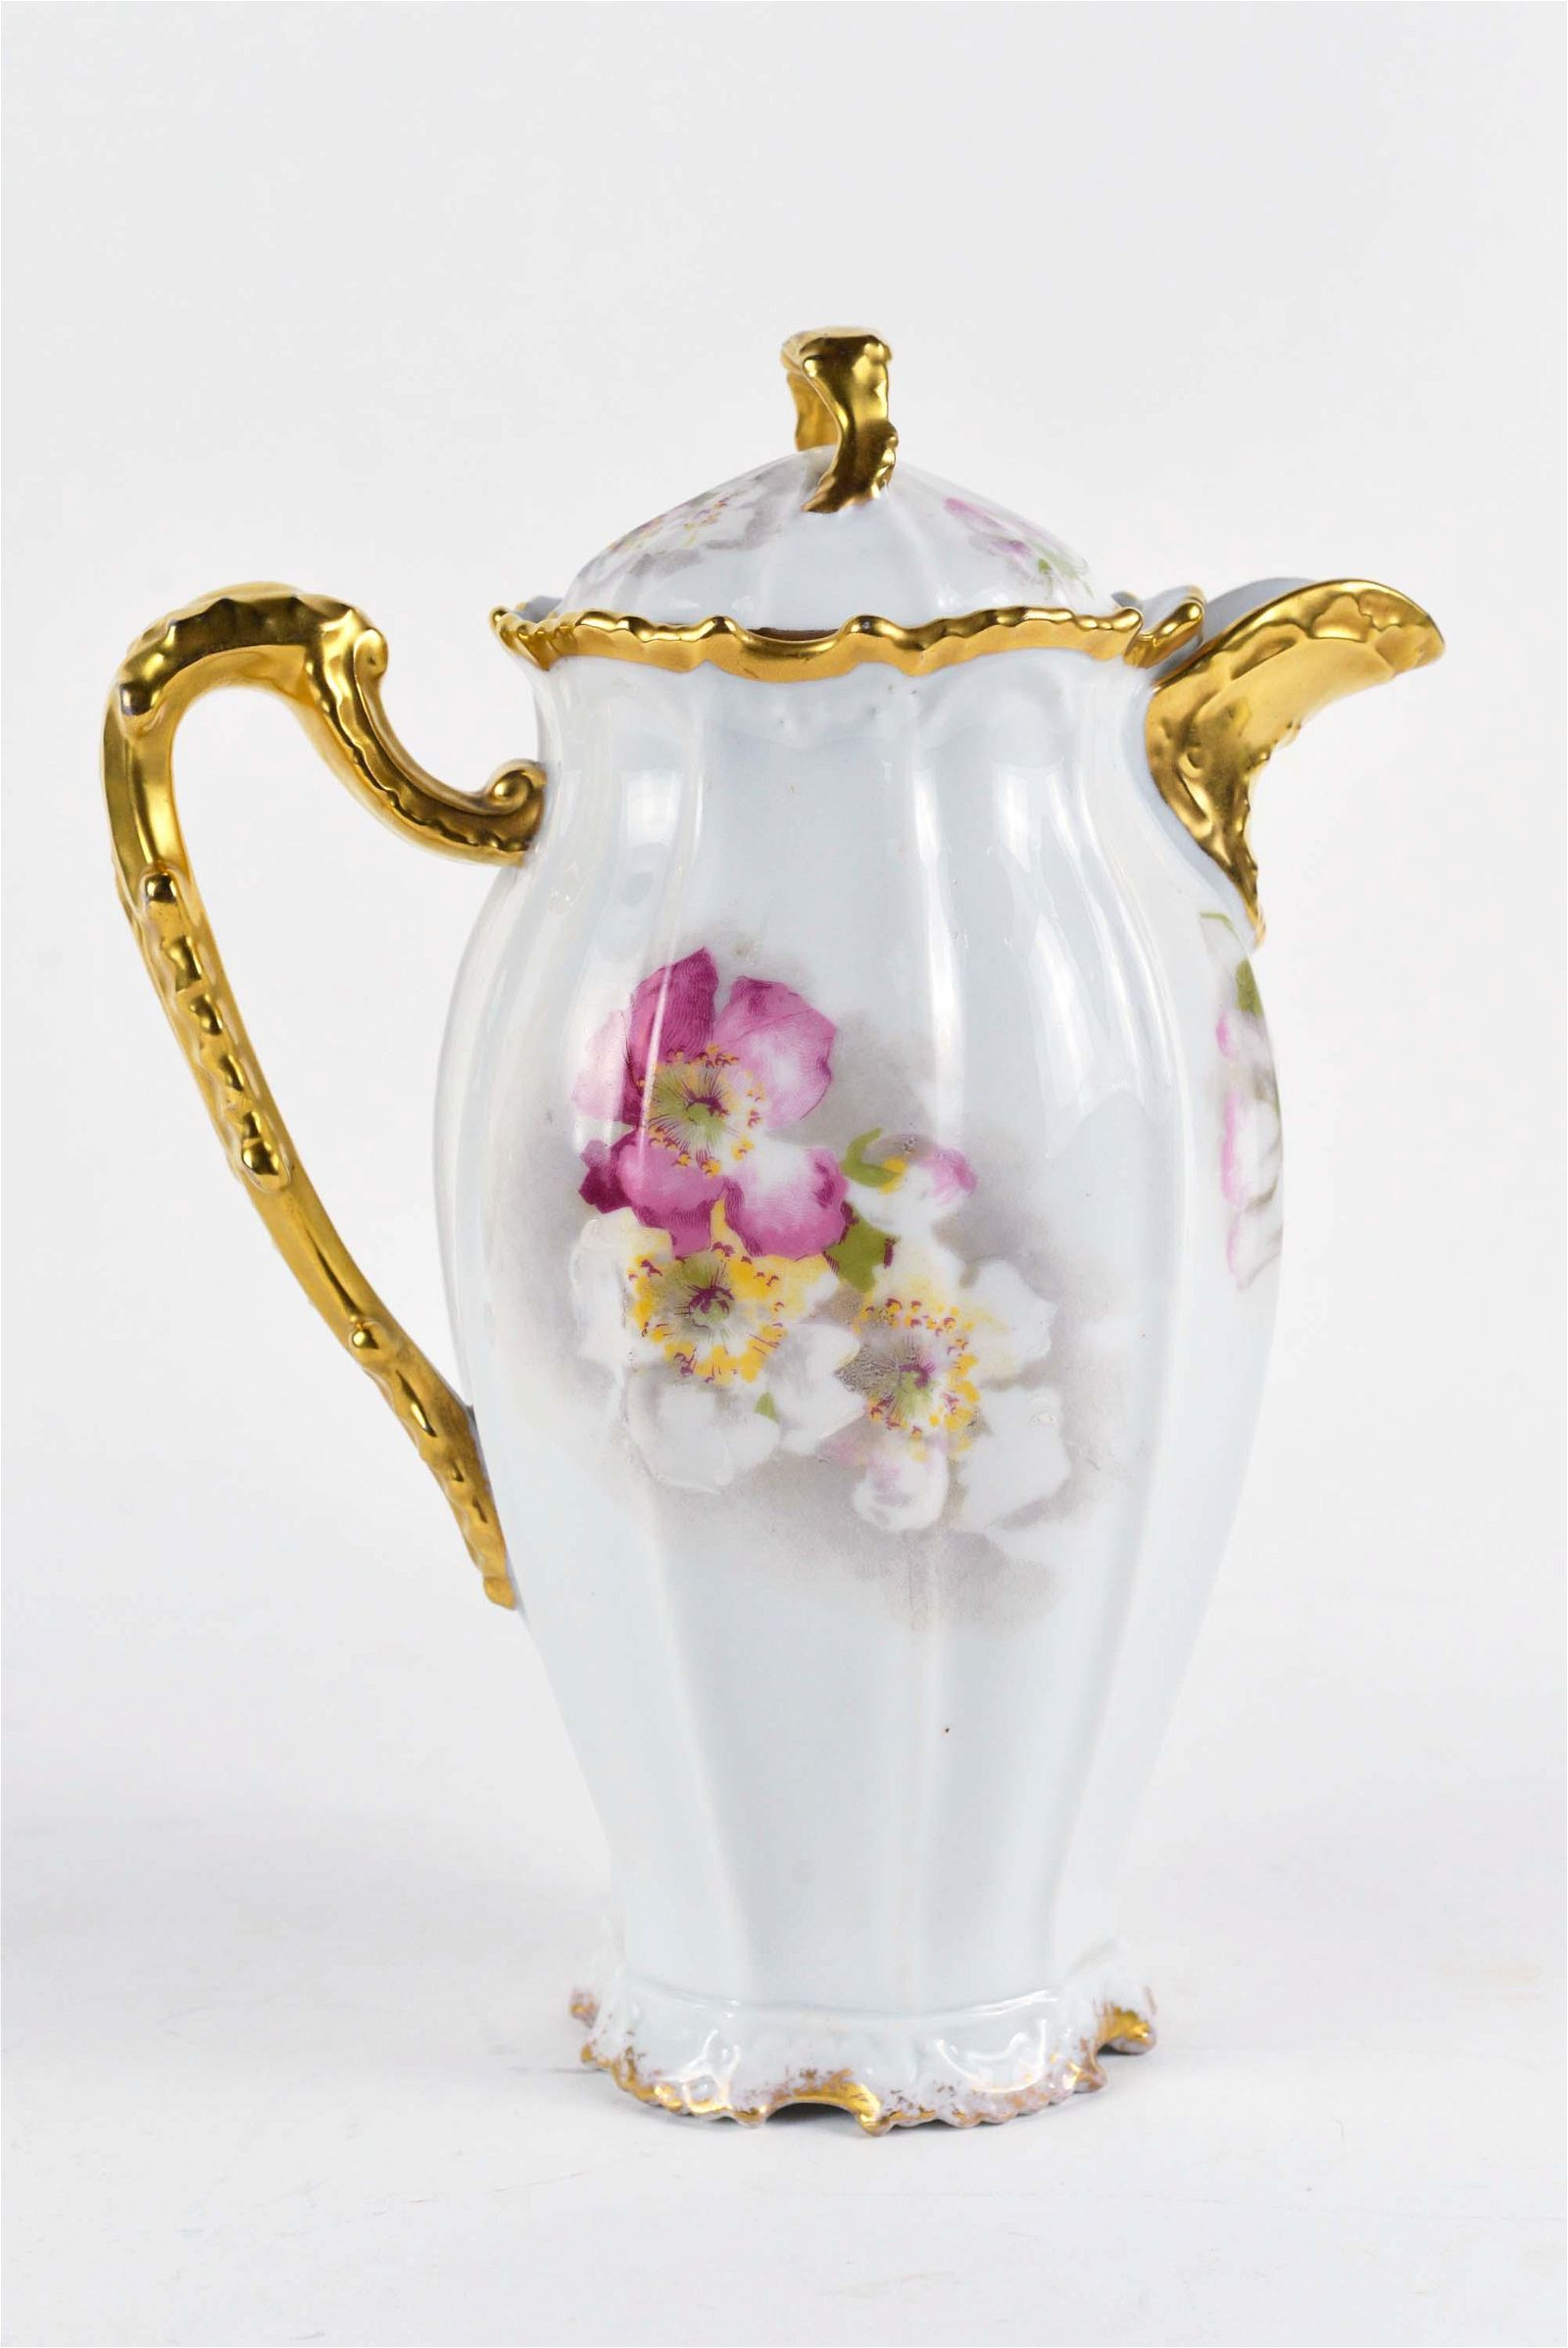 Coronet Limoges - Old hand painted porcelain chocolate